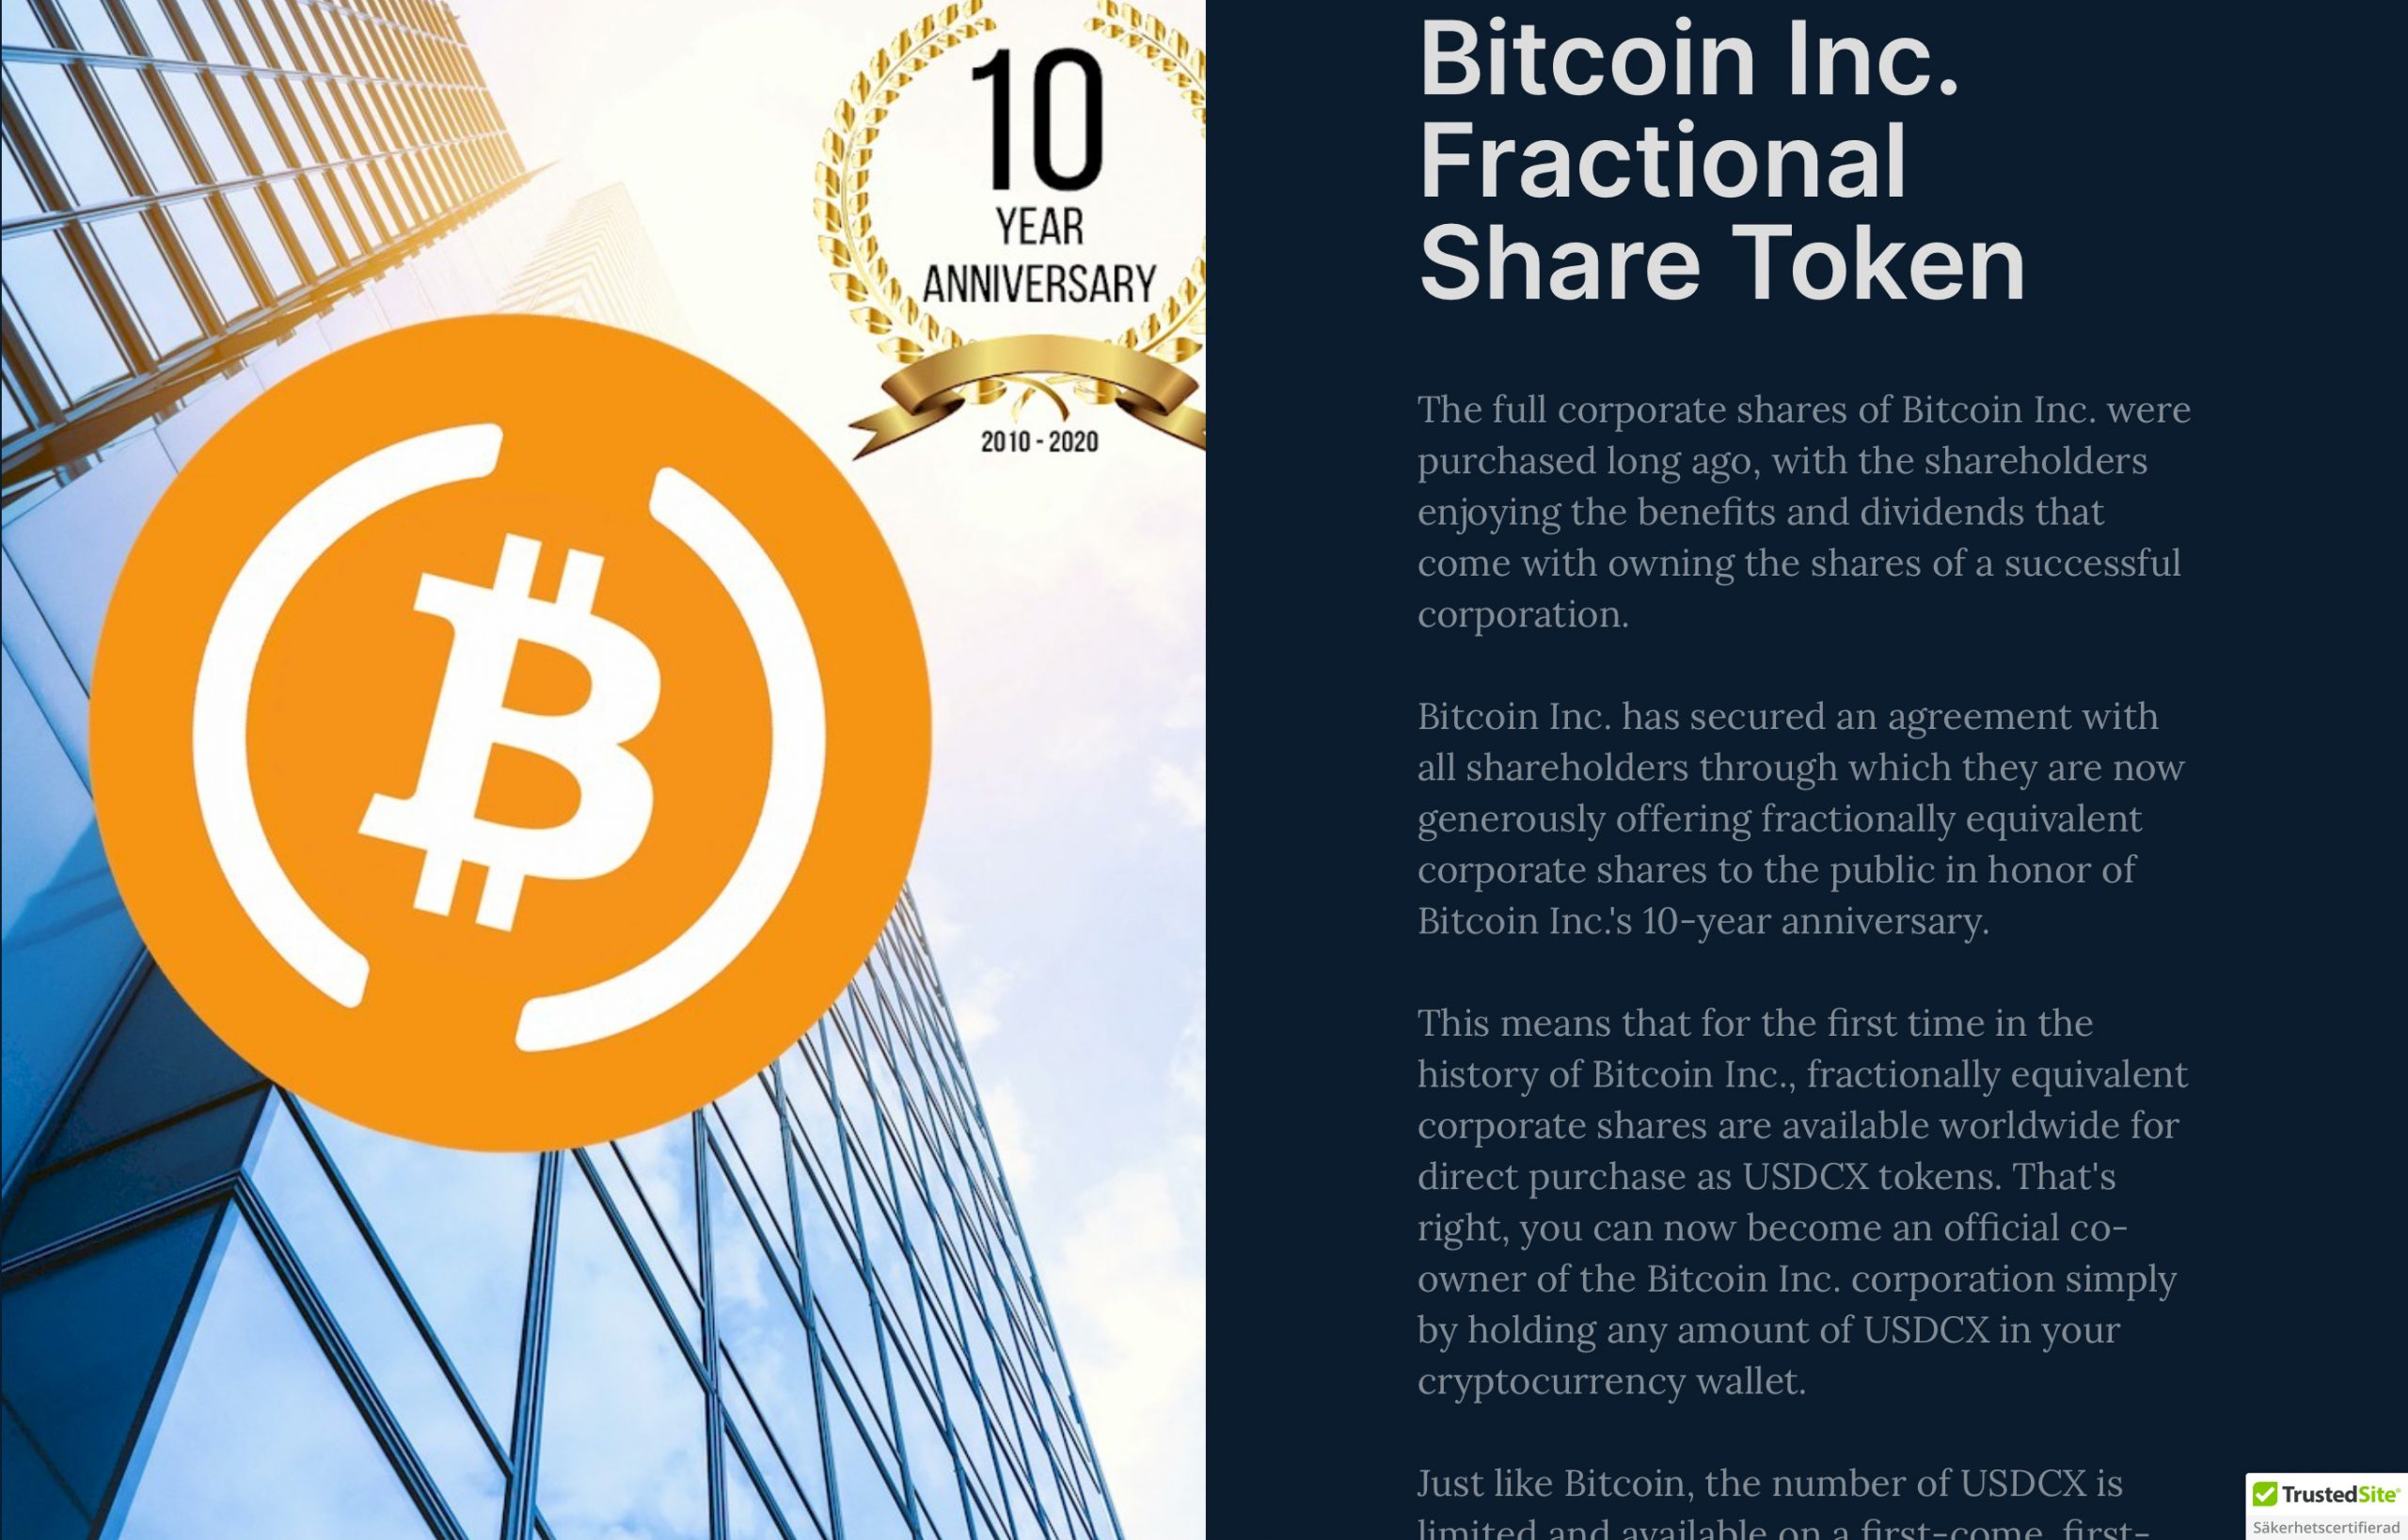 No, You Can Not Acquire Shares in Bitcoin 3